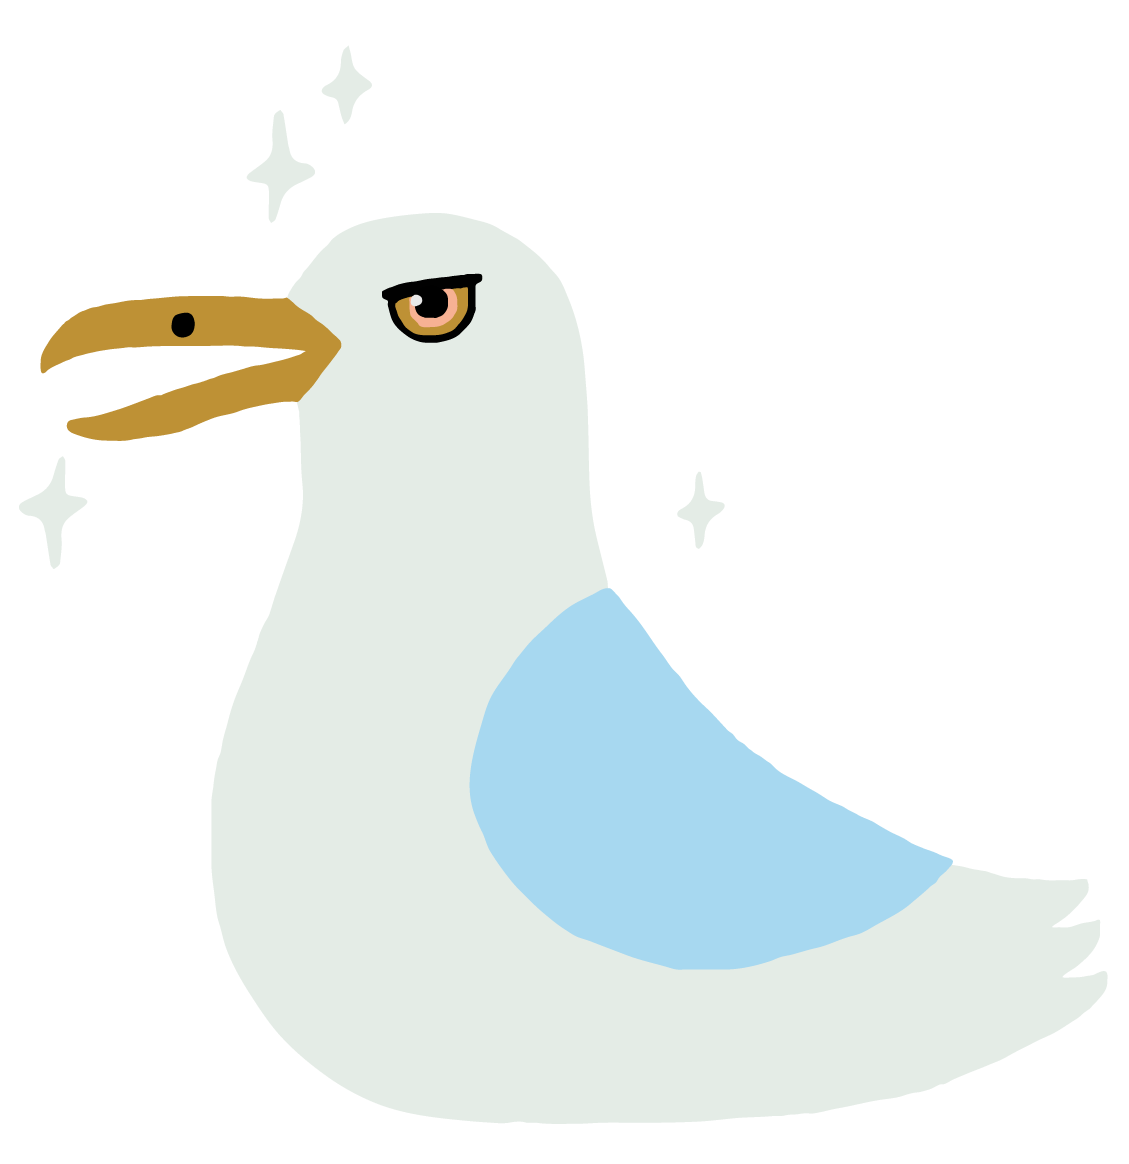 An illustrated image of a seagull